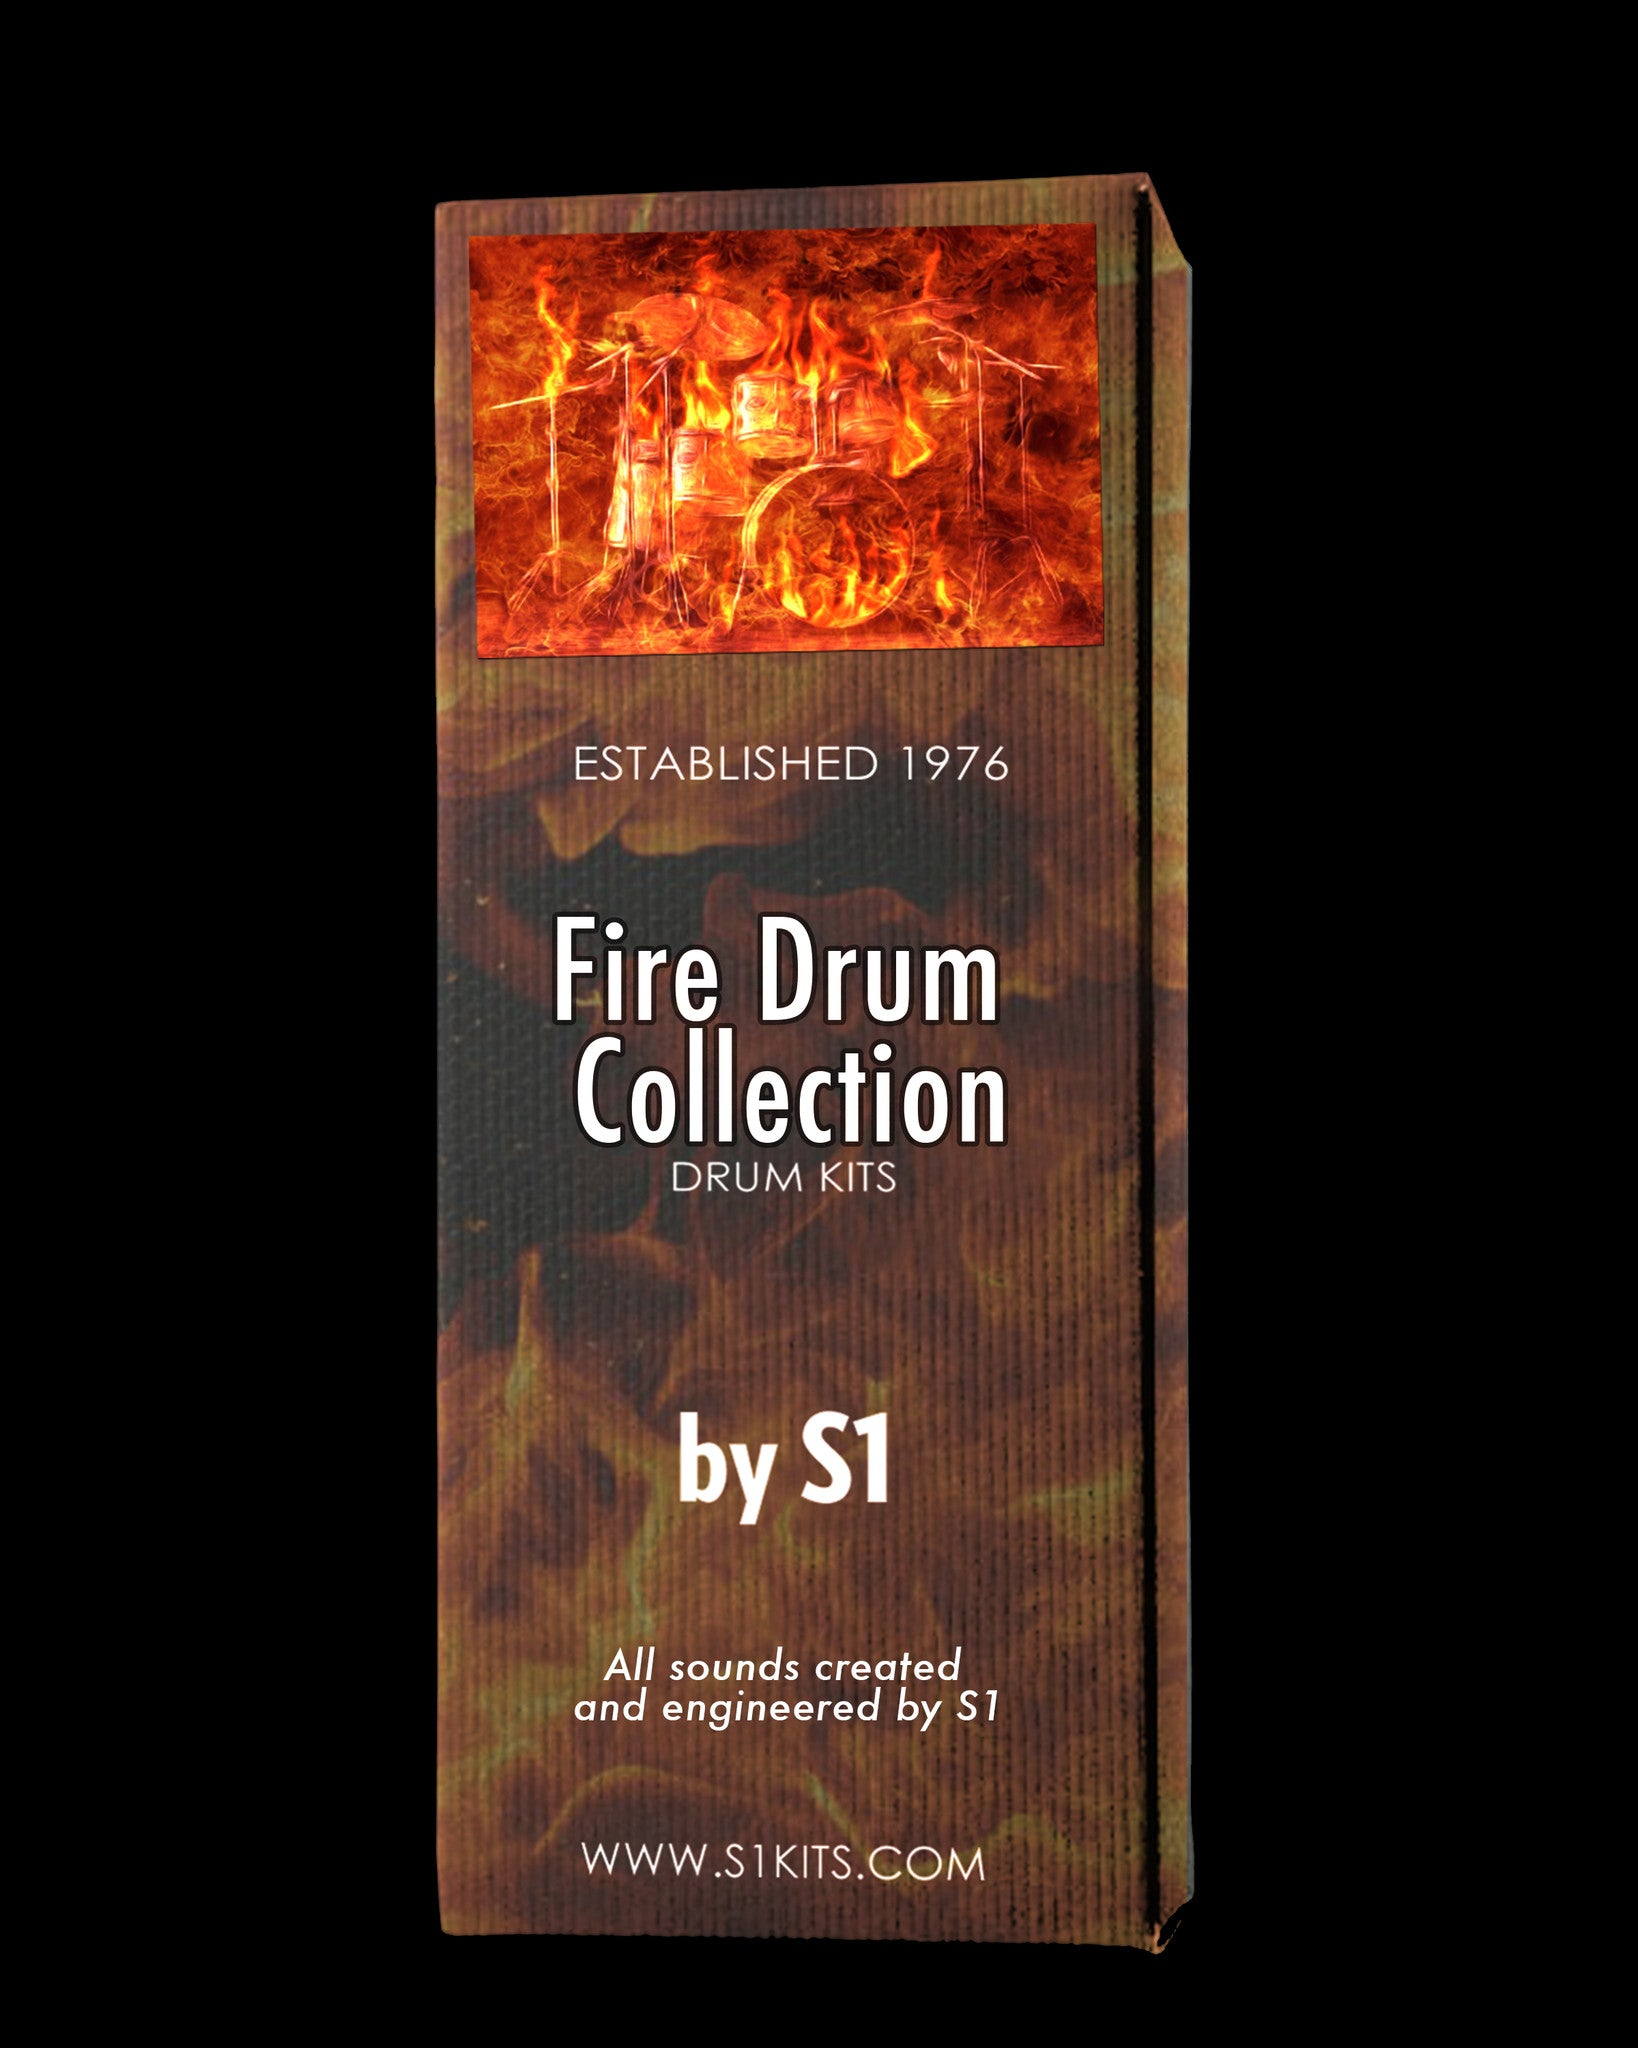 FIRE DRUM COLLECTION